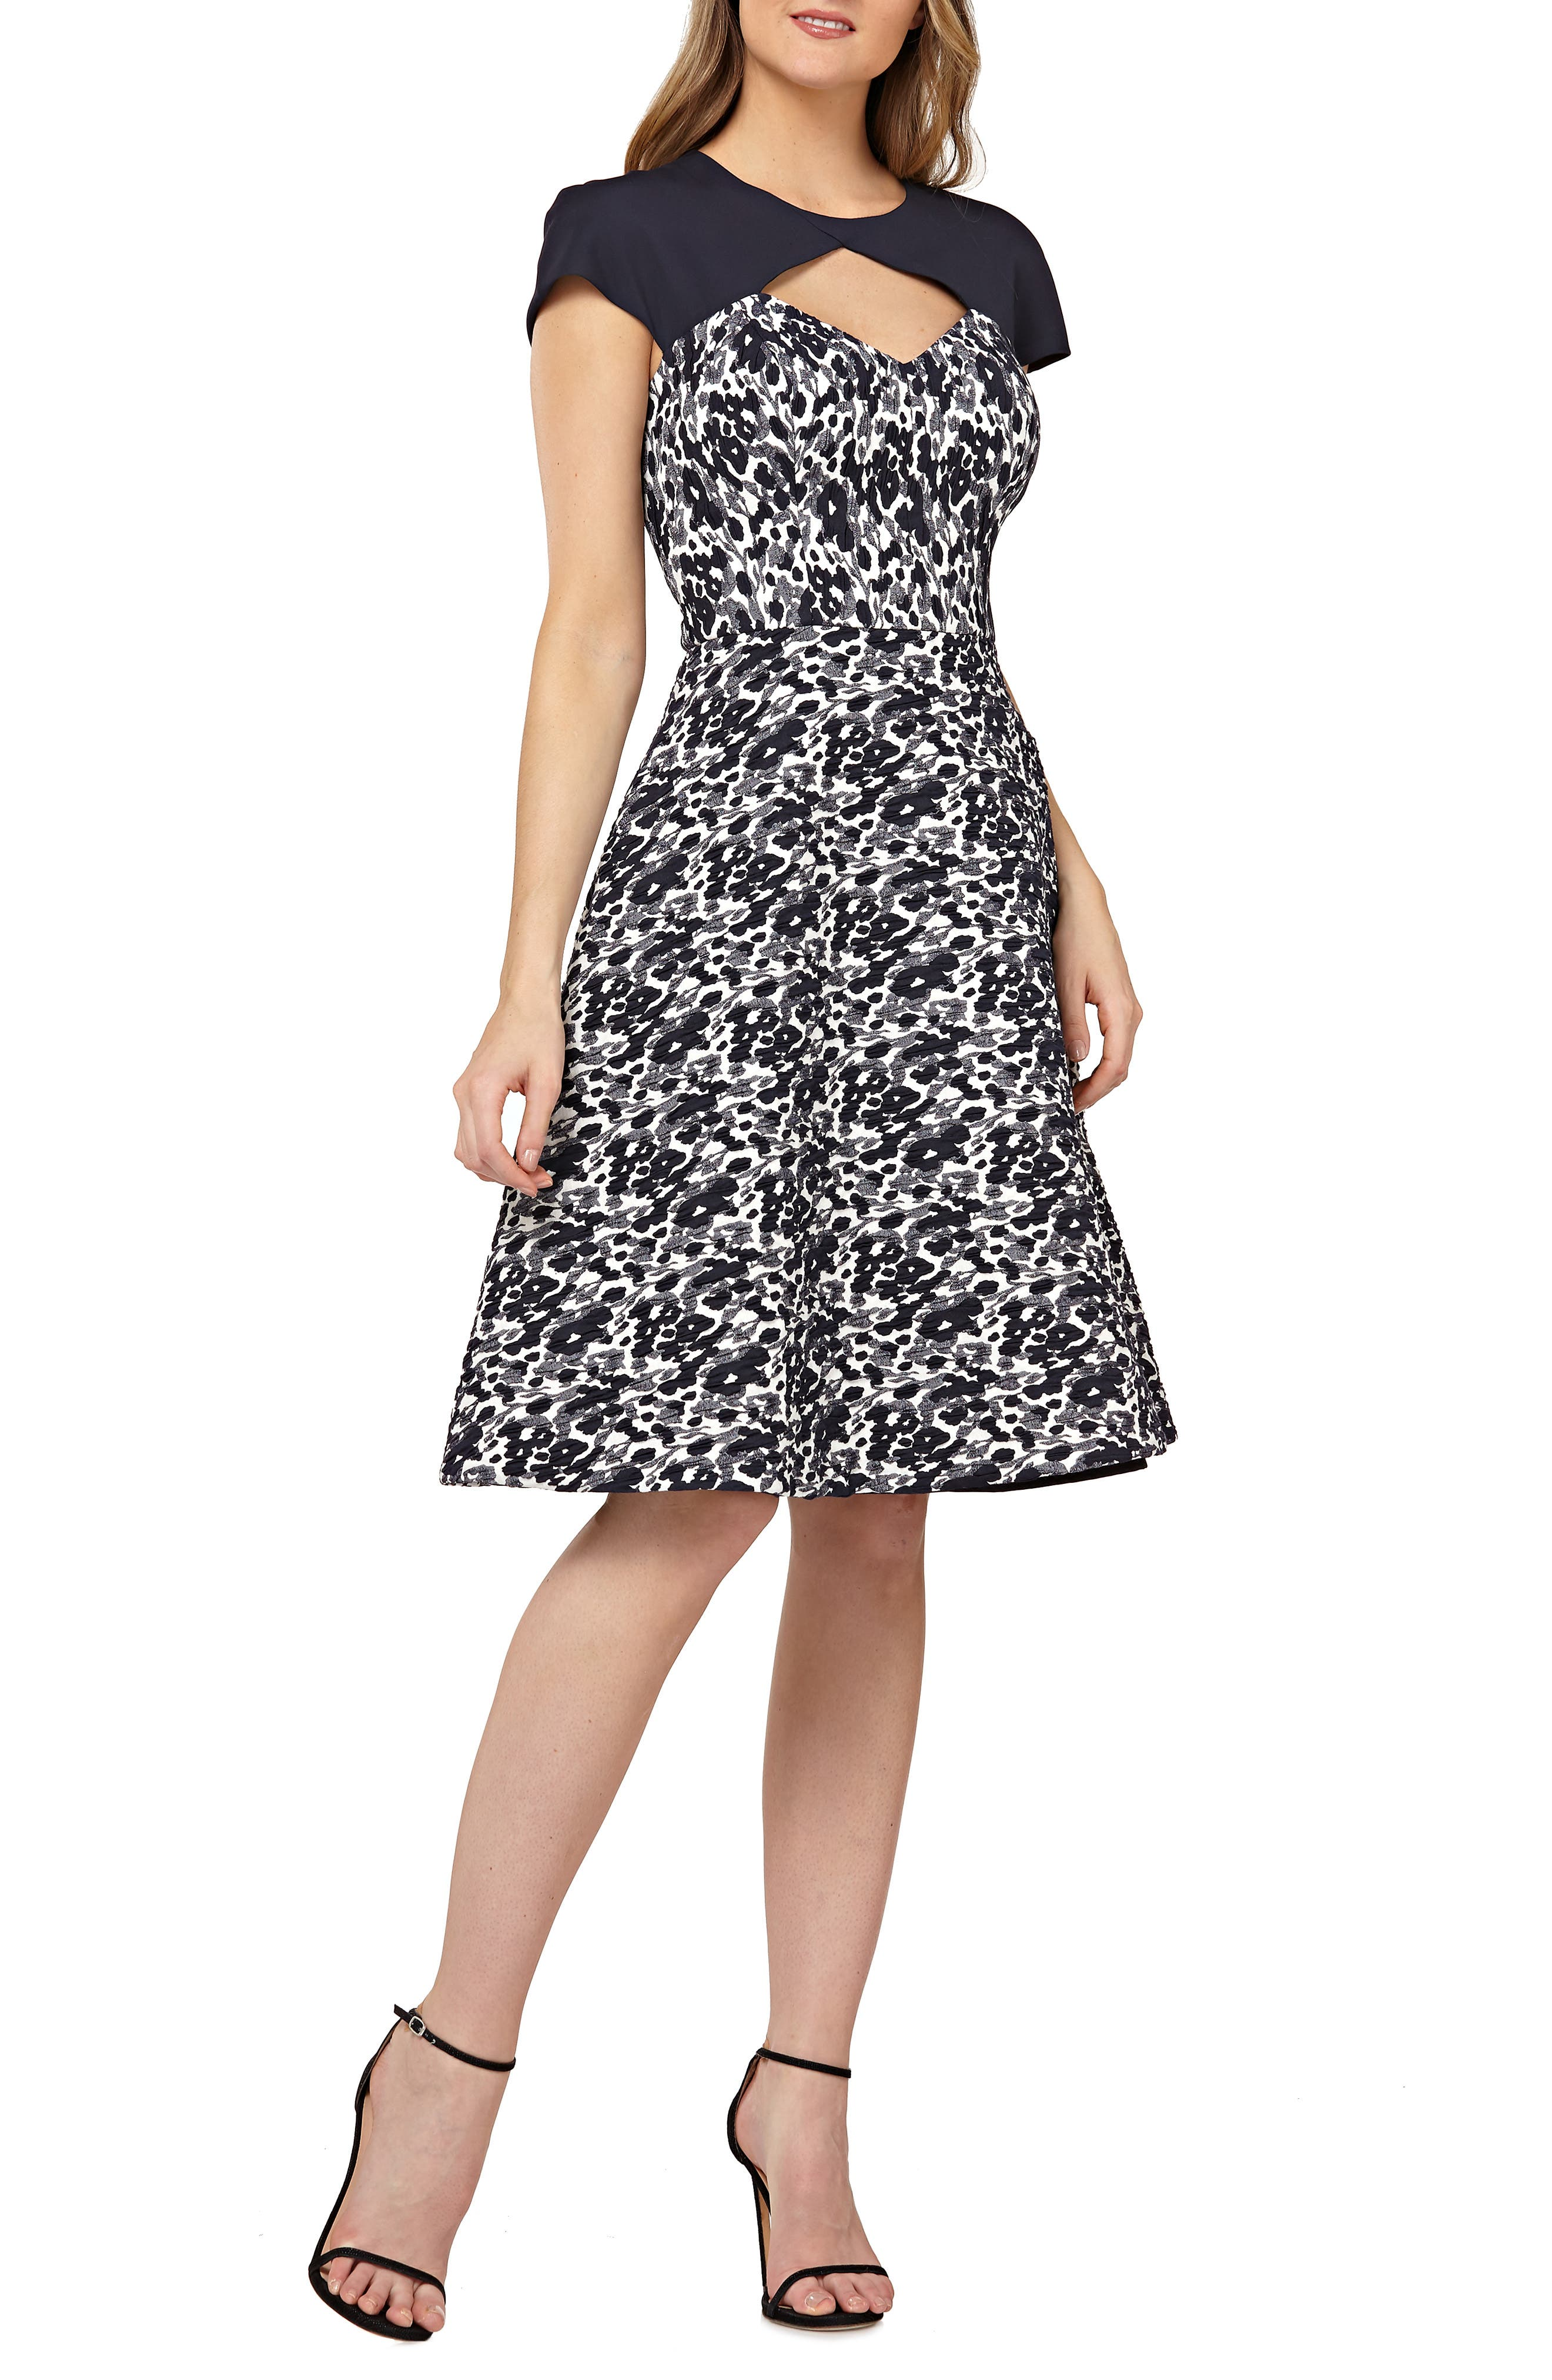 KAY UNGER Cutout Cocktail Dress in Navy Multi